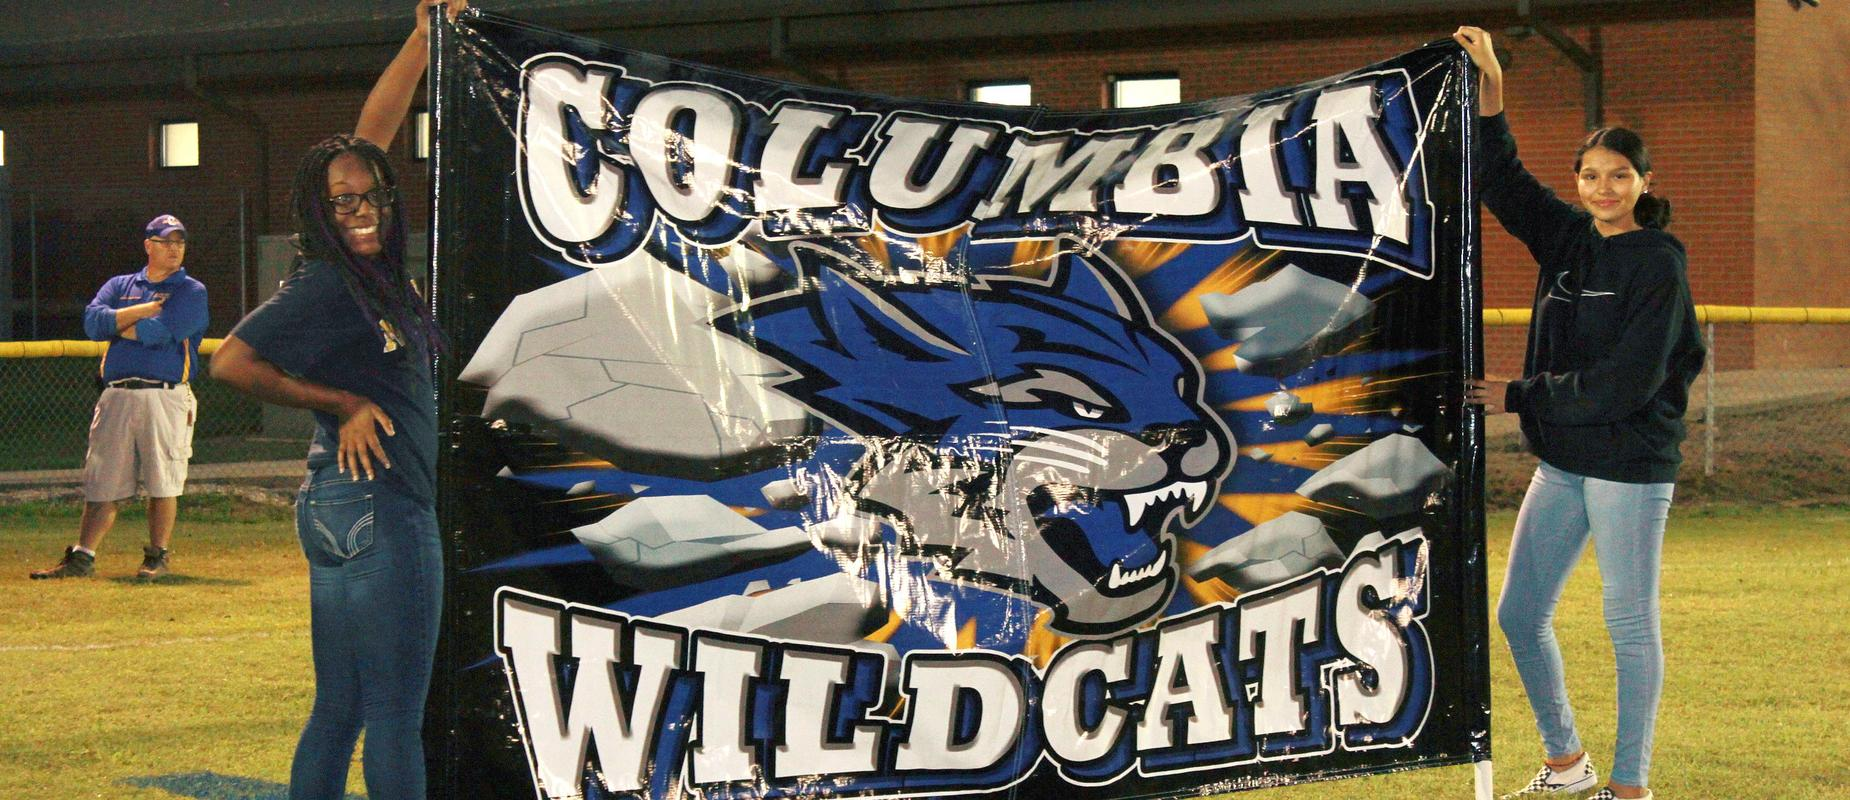 two students holding large Columbia Wildcats banner on football field